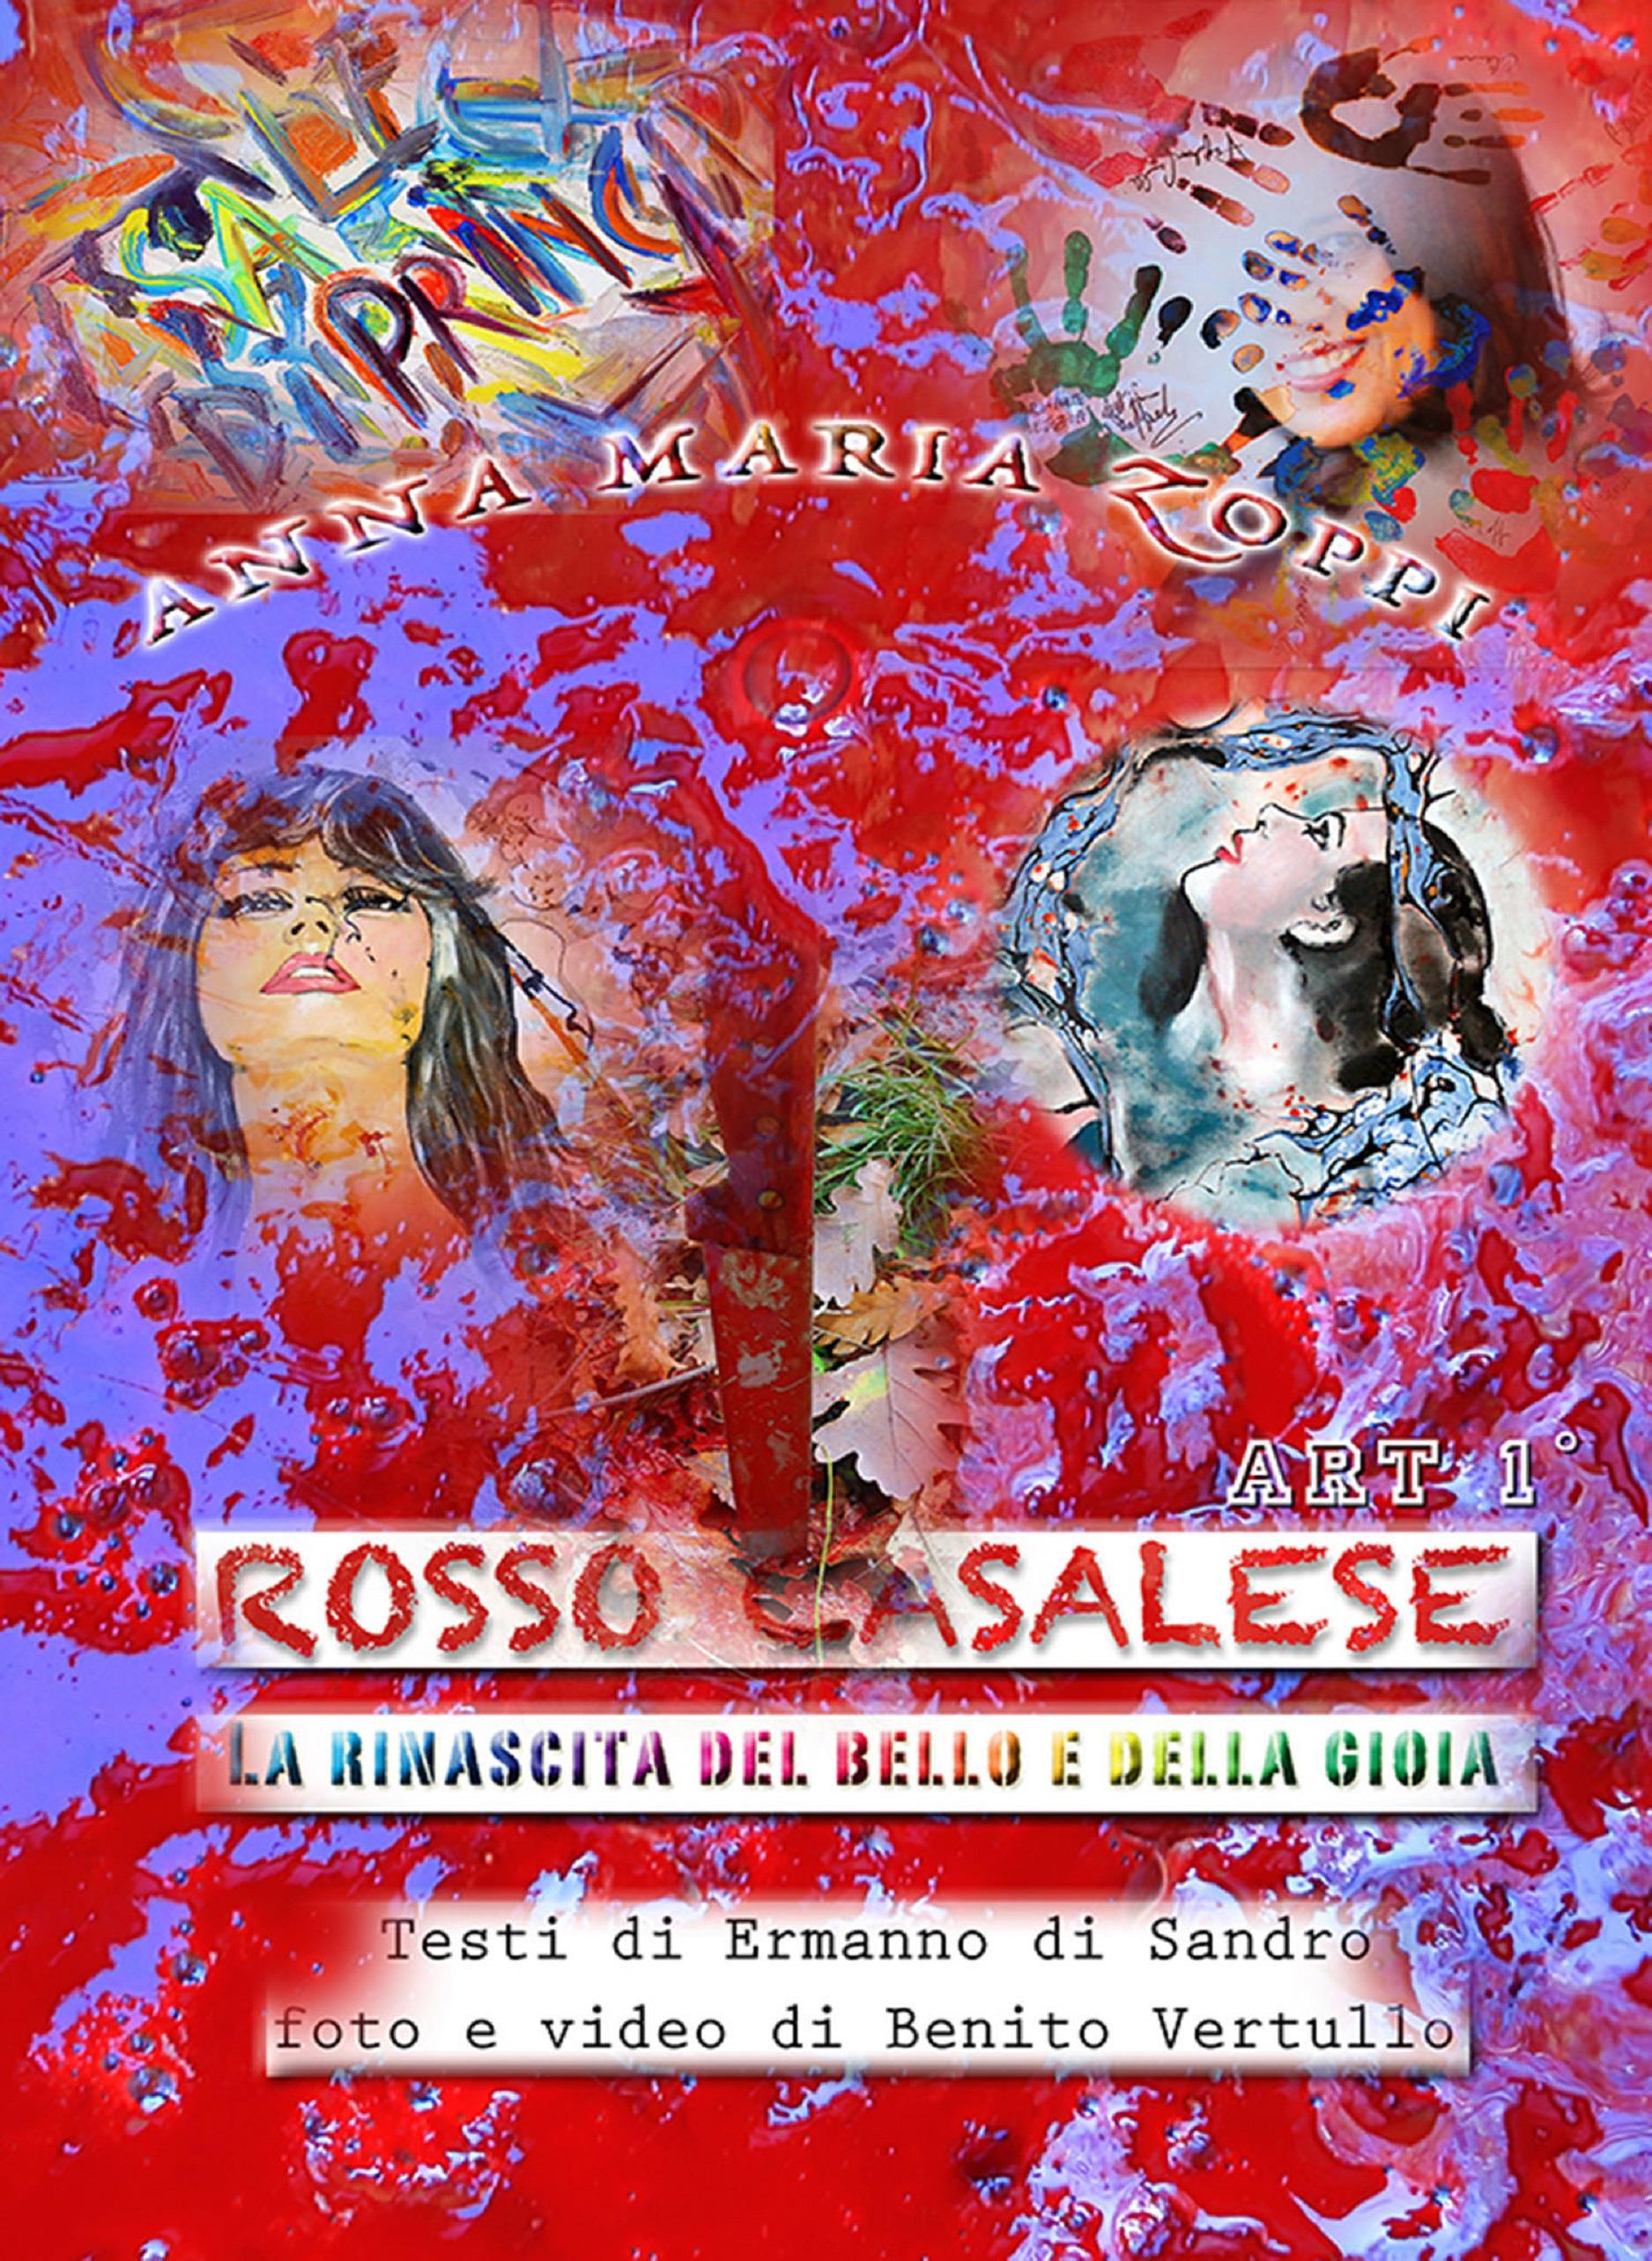 Rosso Casalese Art 1°